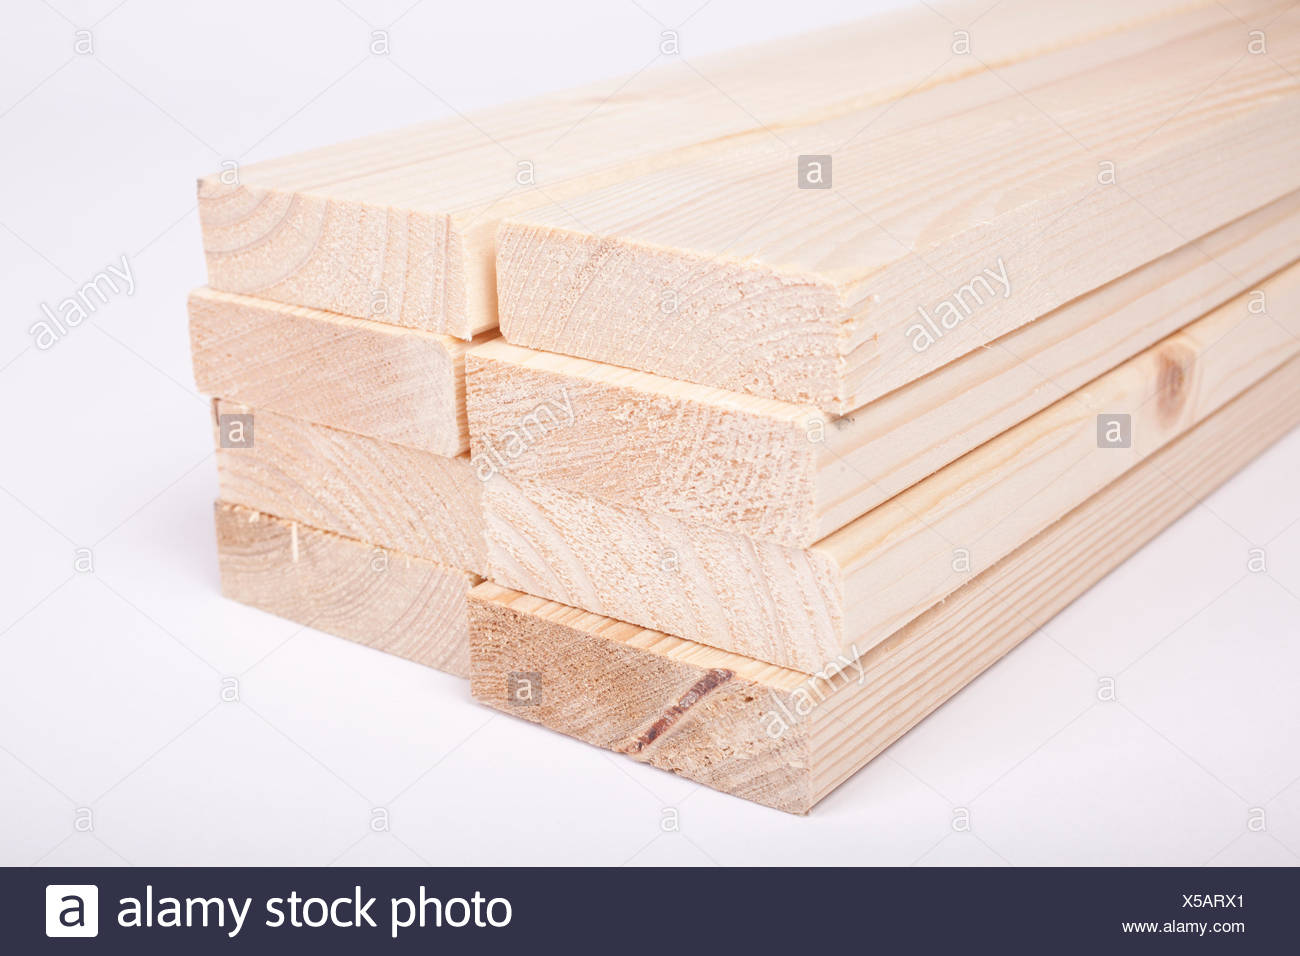 timber spruce with a chamfer or bevelled edge - Stock Image